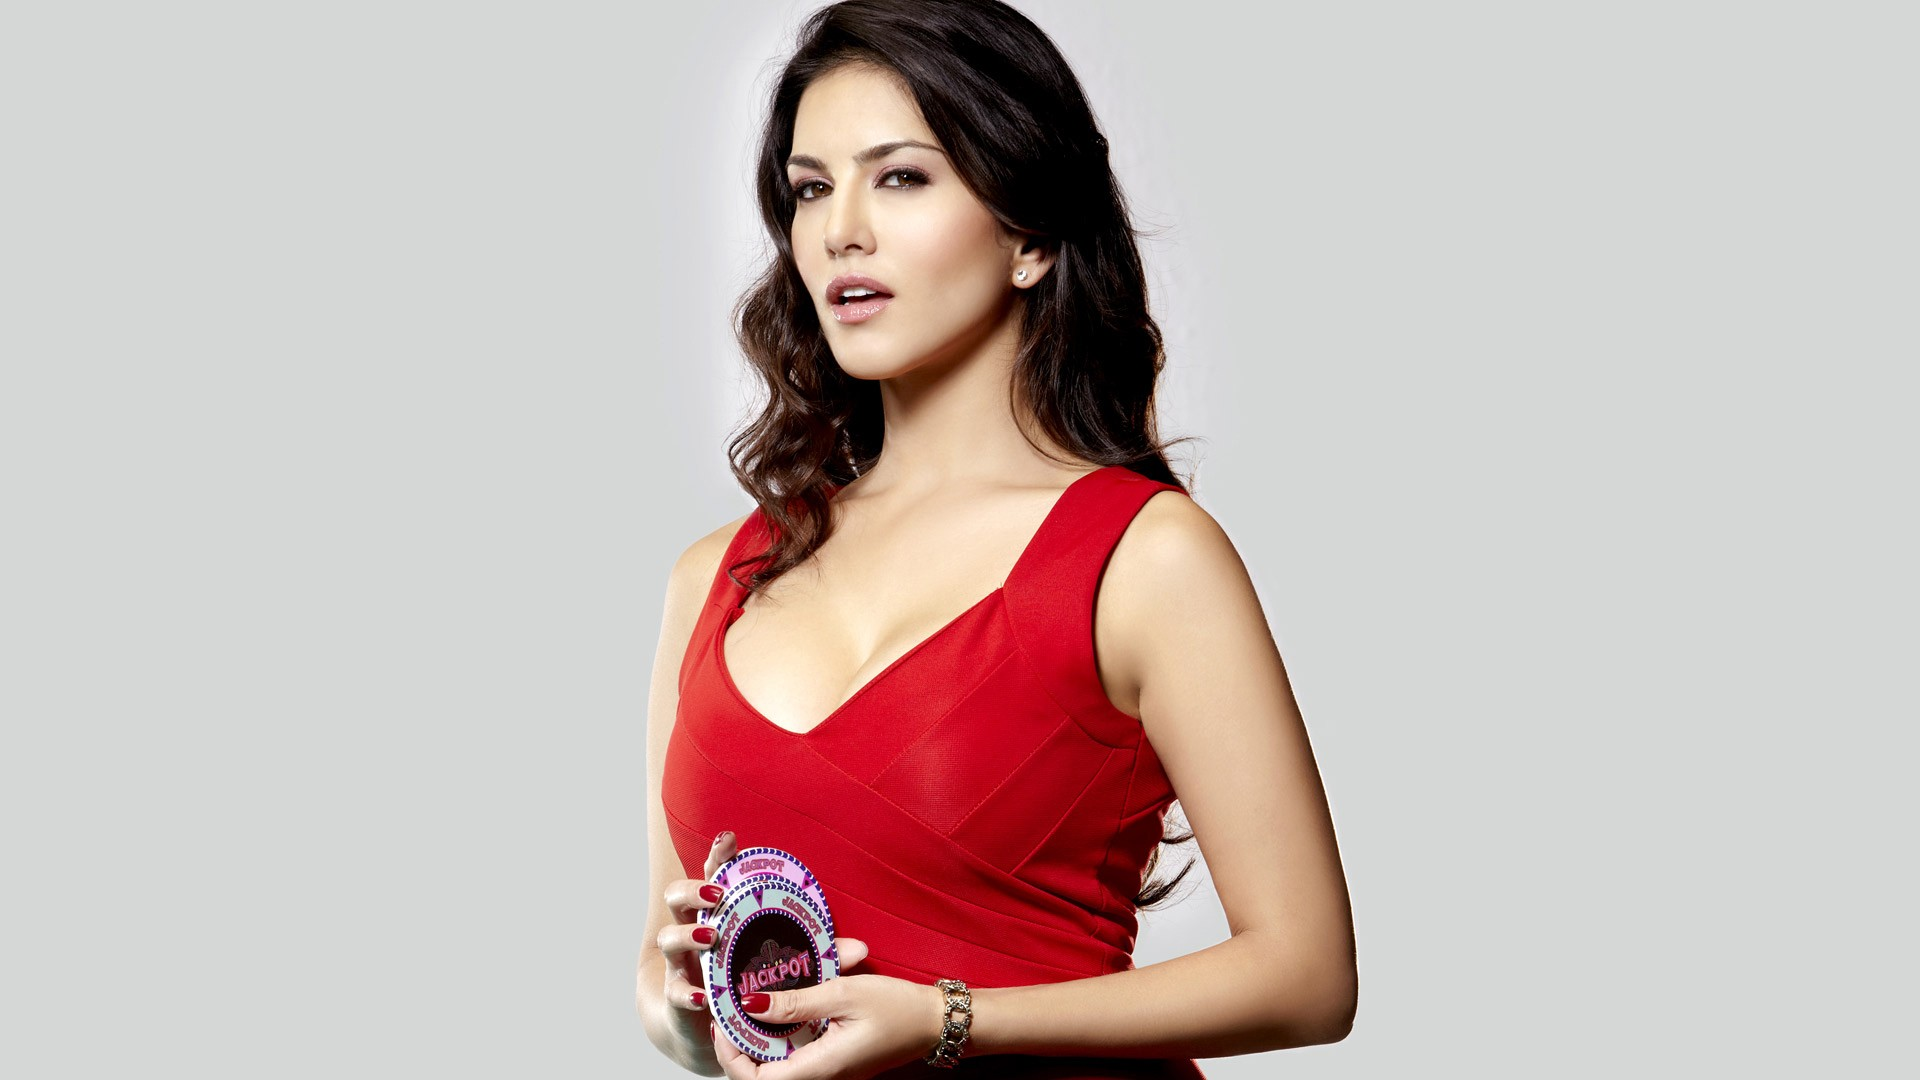 sunny leone hd wallpapers cutewallpaper sunny leone wallpapers hd